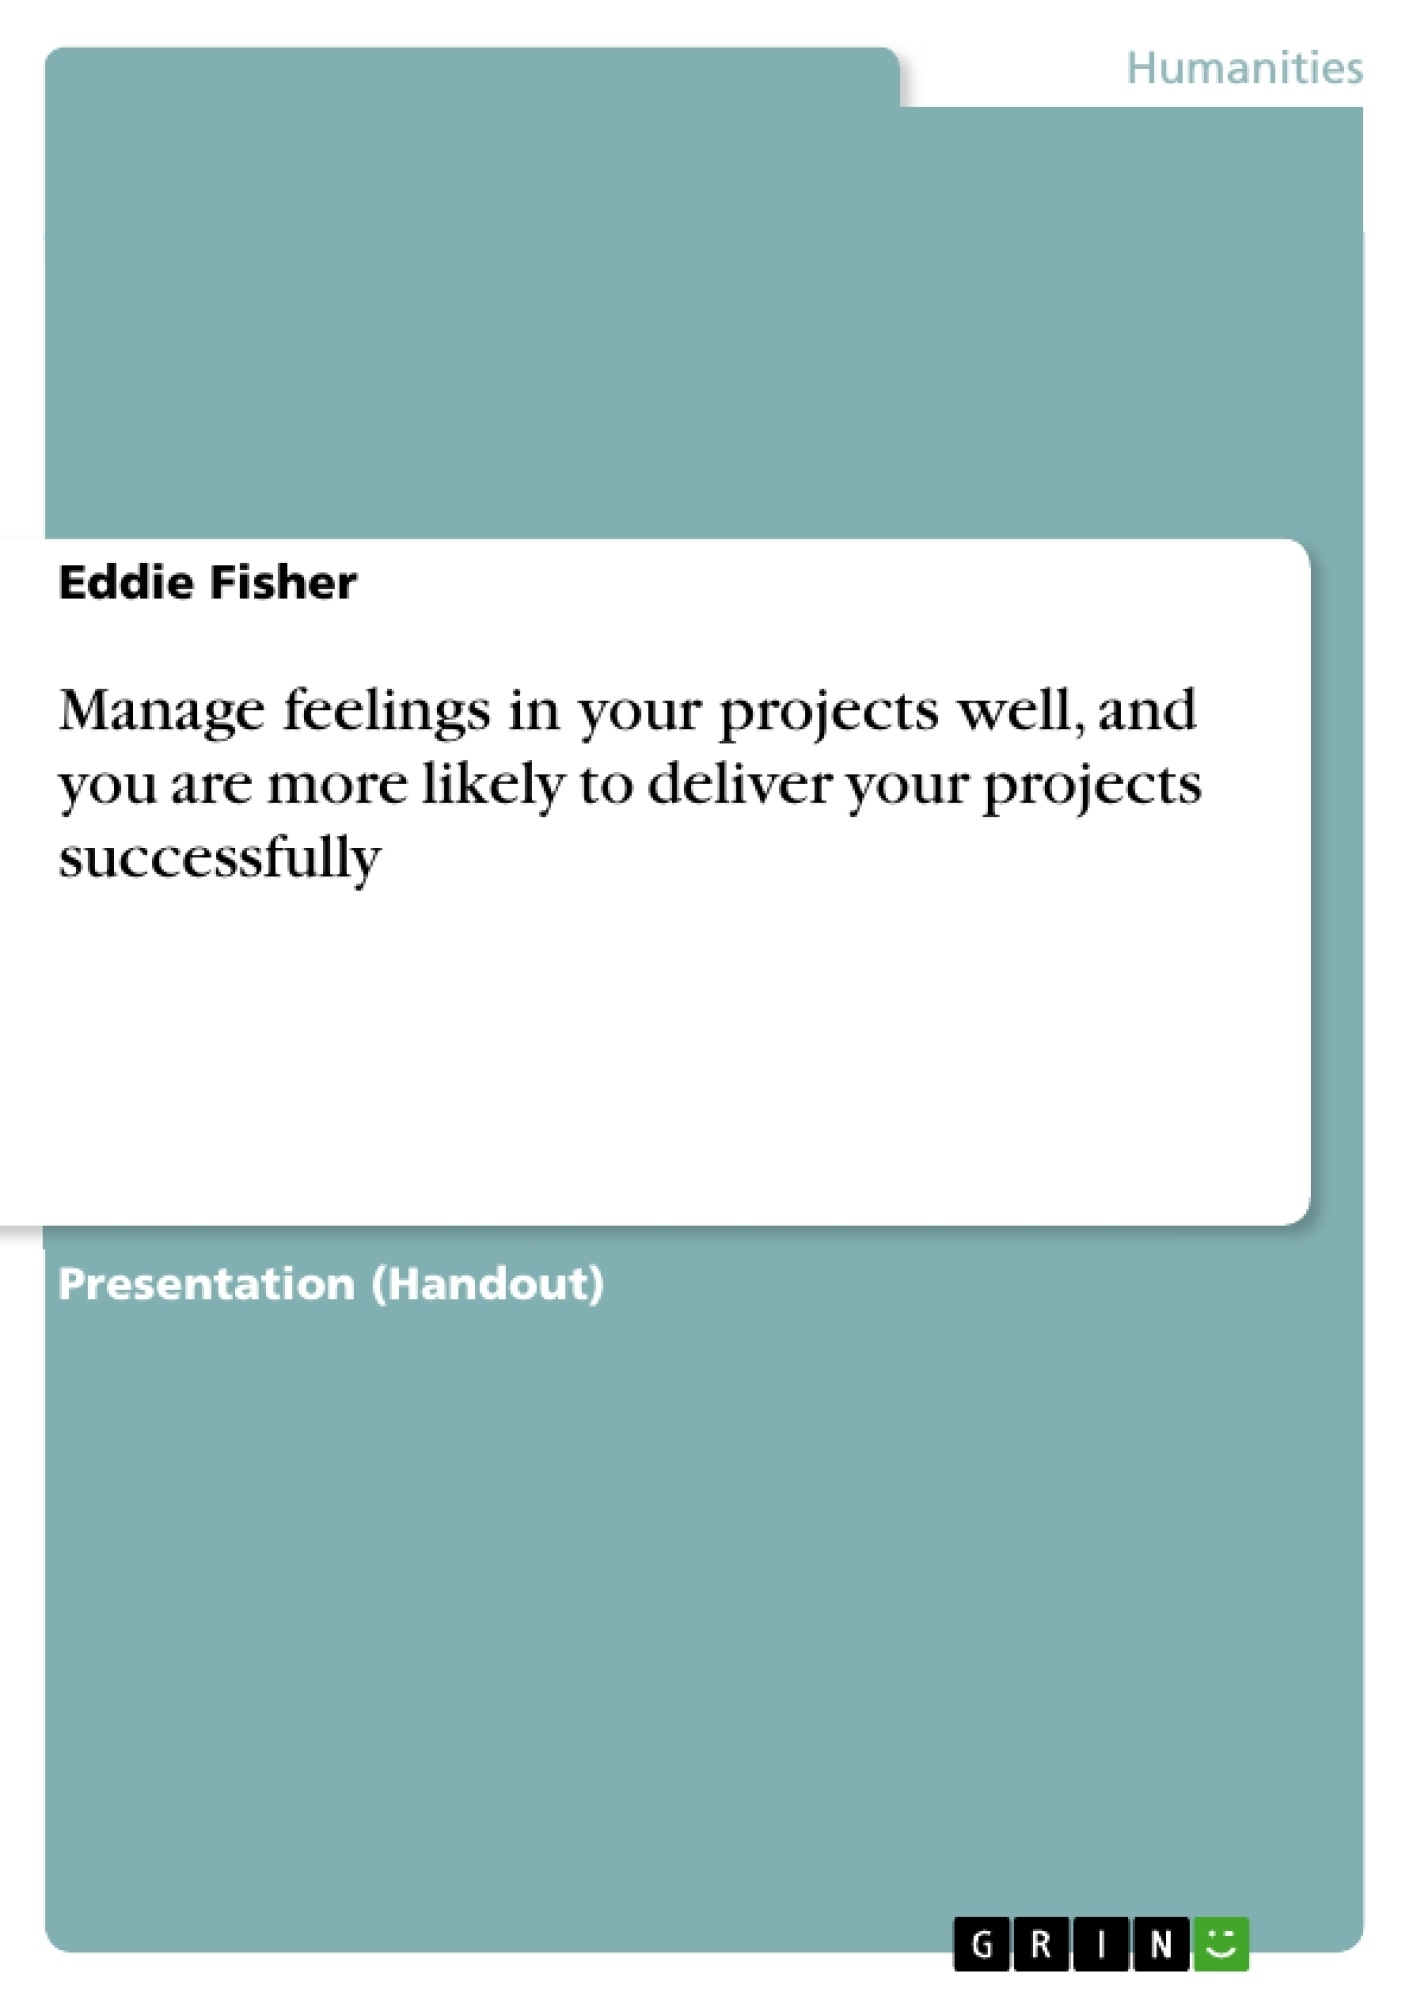 Title: Manage feelings in your projects well, and you are more likely to deliver your projects successfully